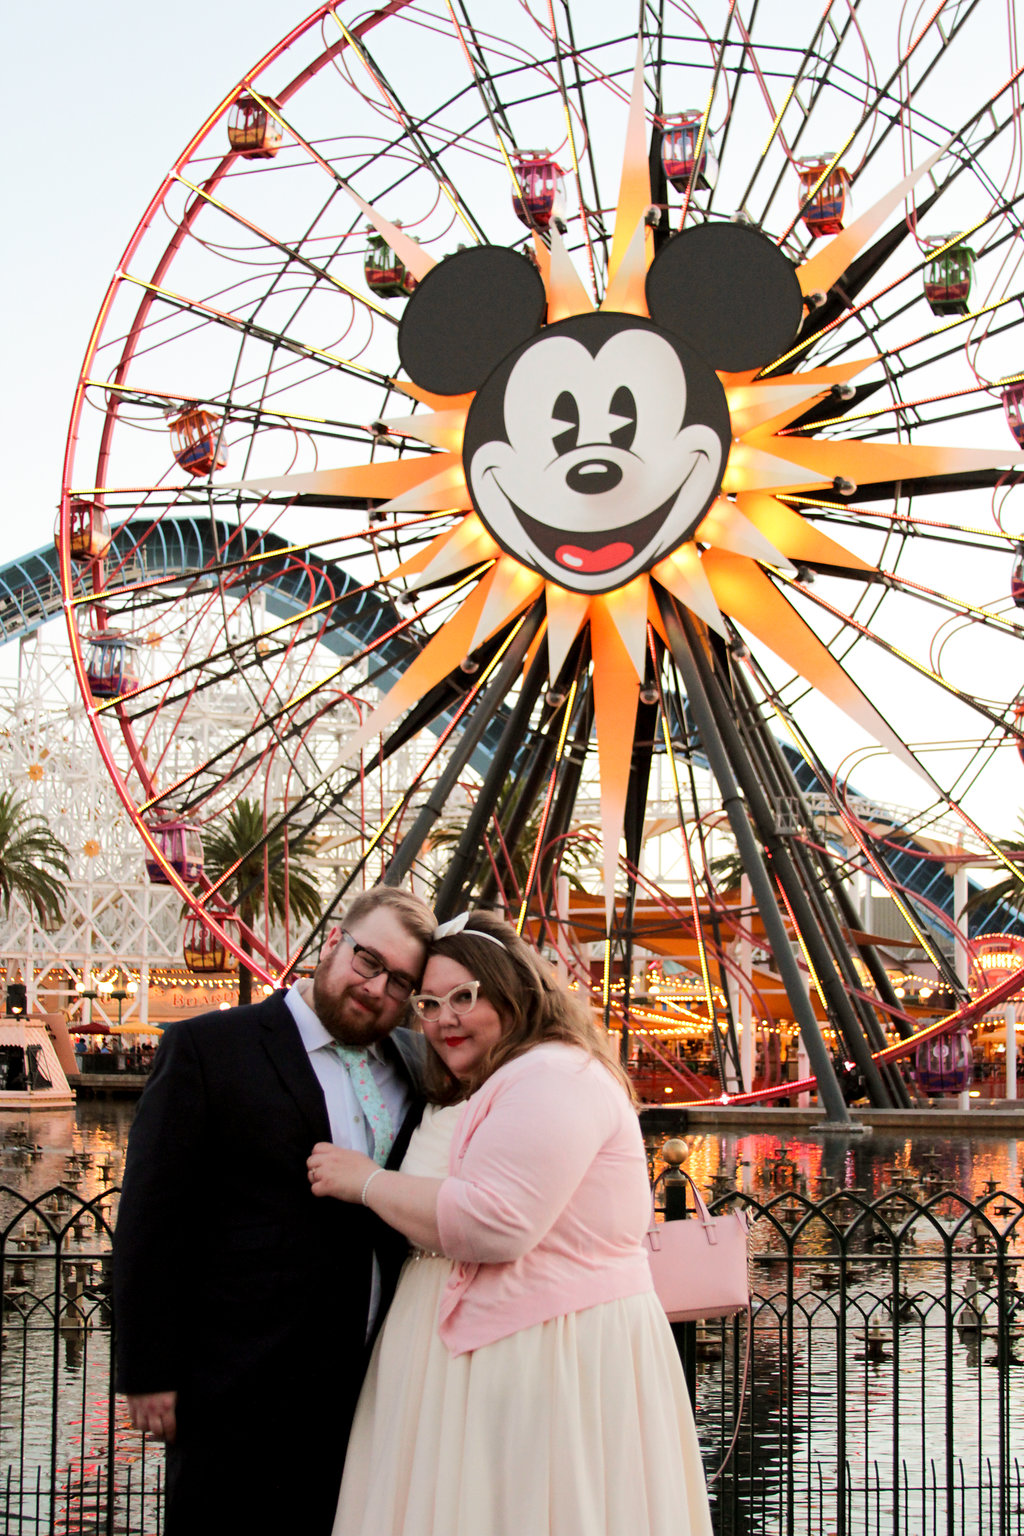 Steph and Shelby's Wedding Day Disneyland Photo Shoot!